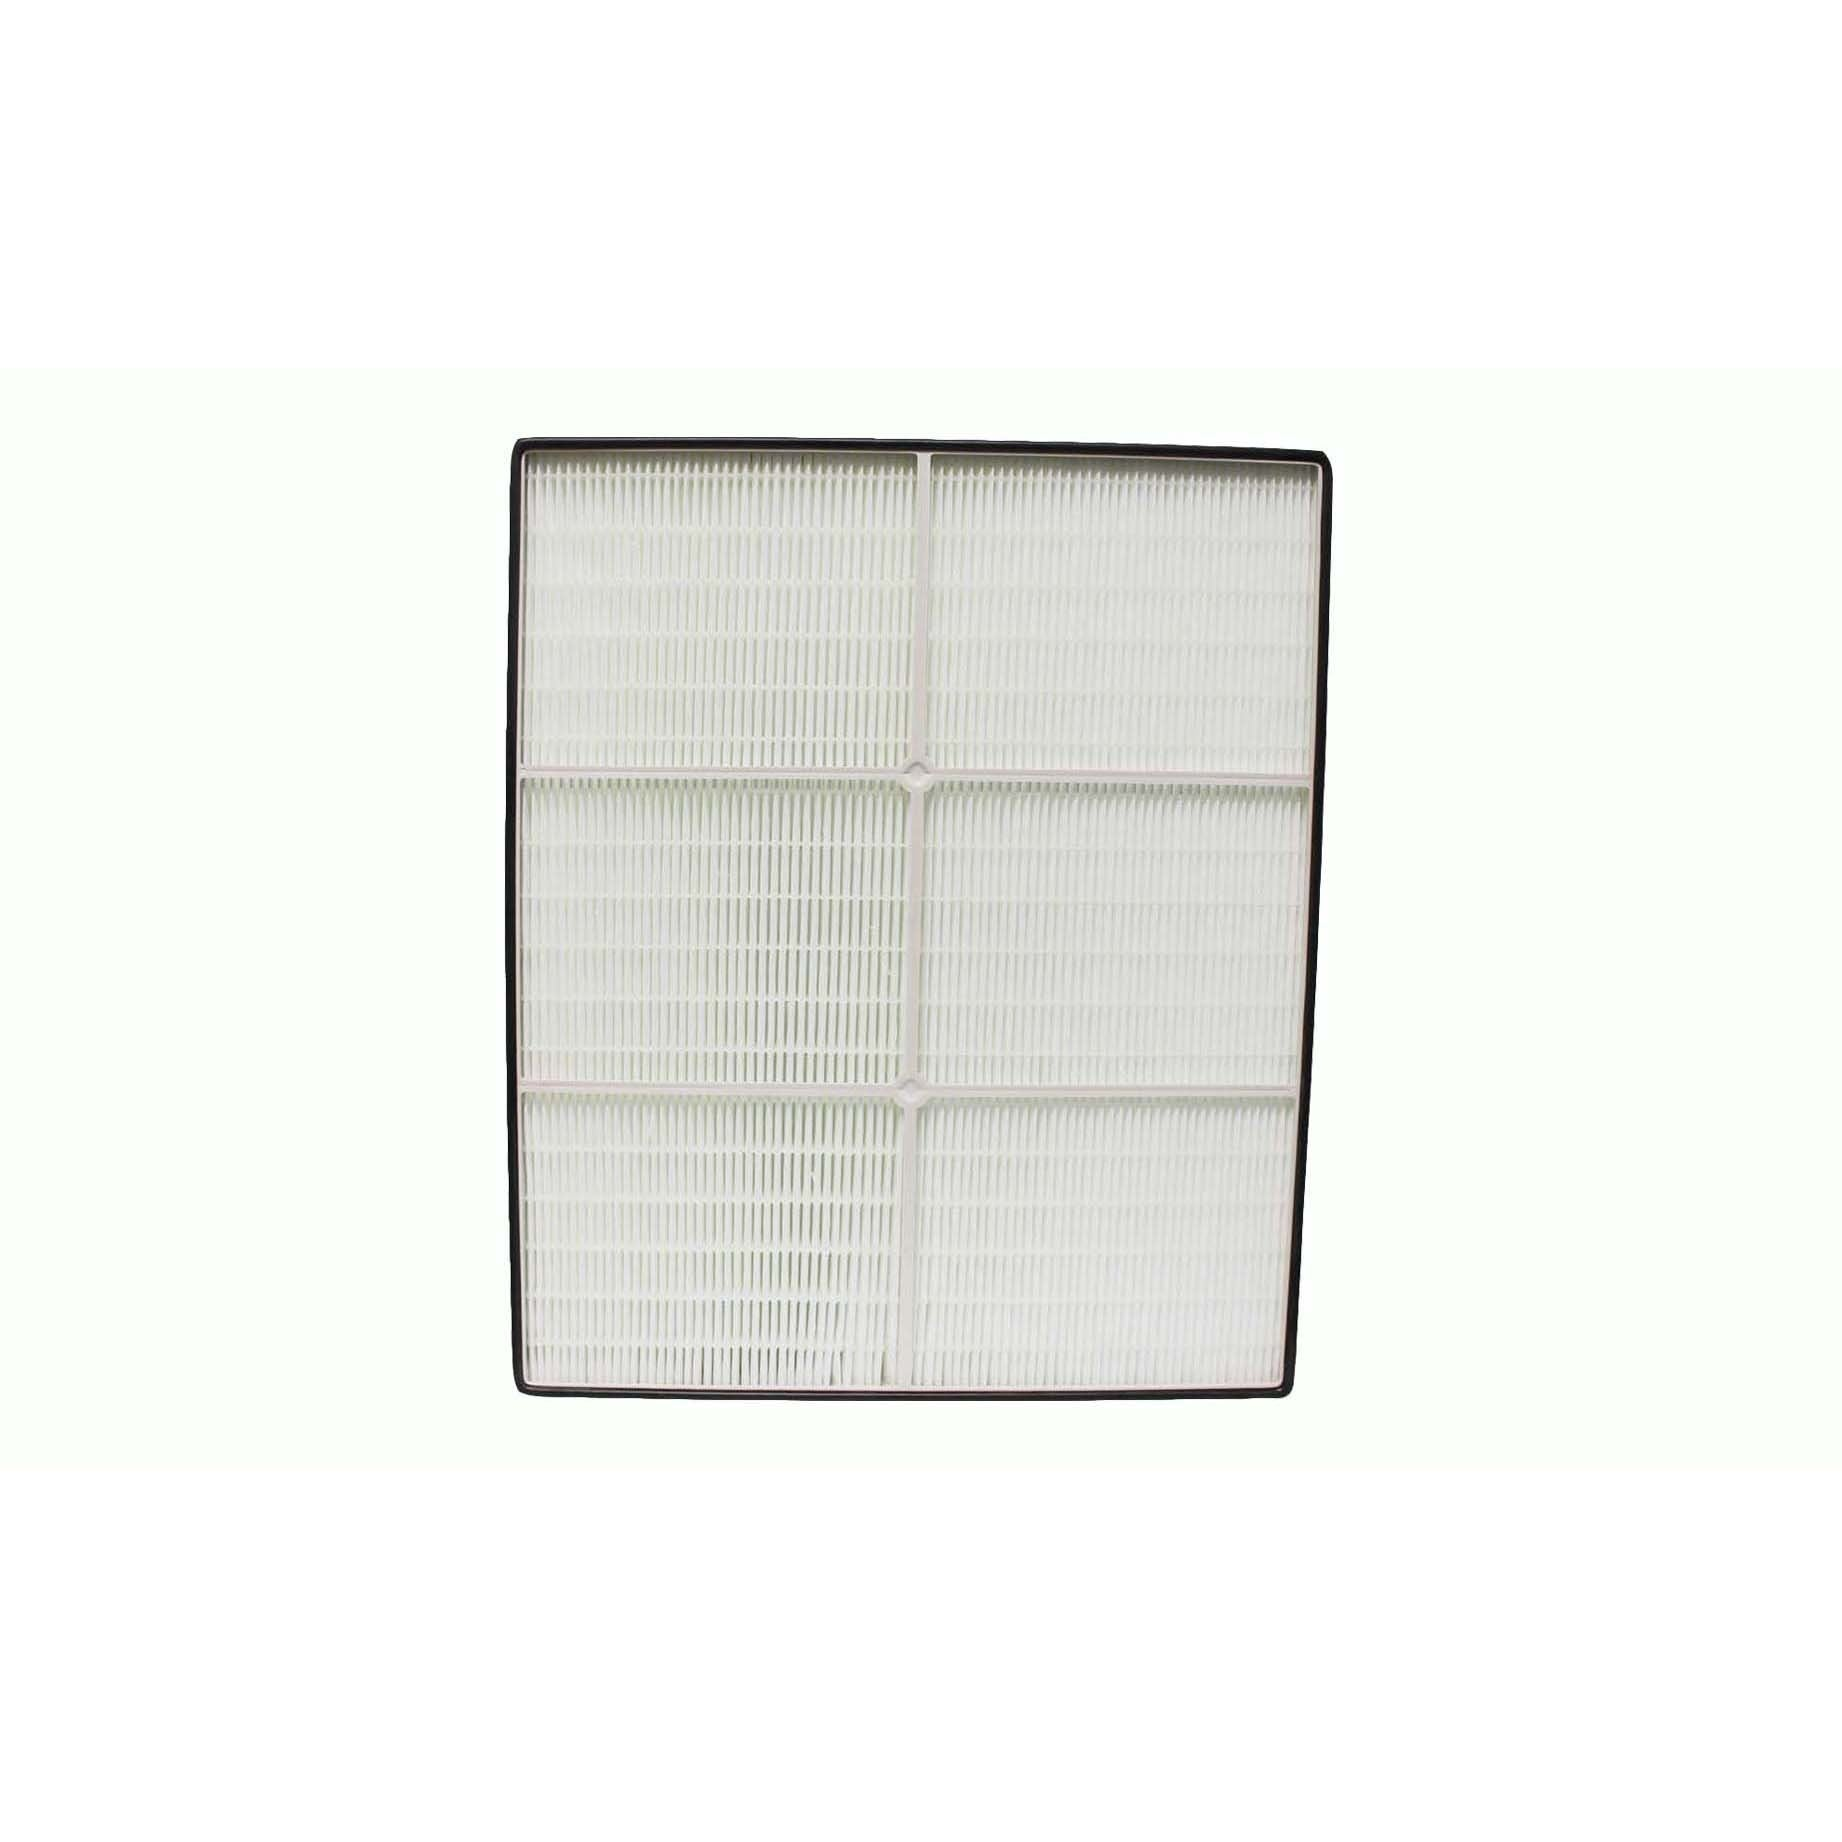 Crucial Kenmore 83200 and 83202 Air Purifier Filter, Part...